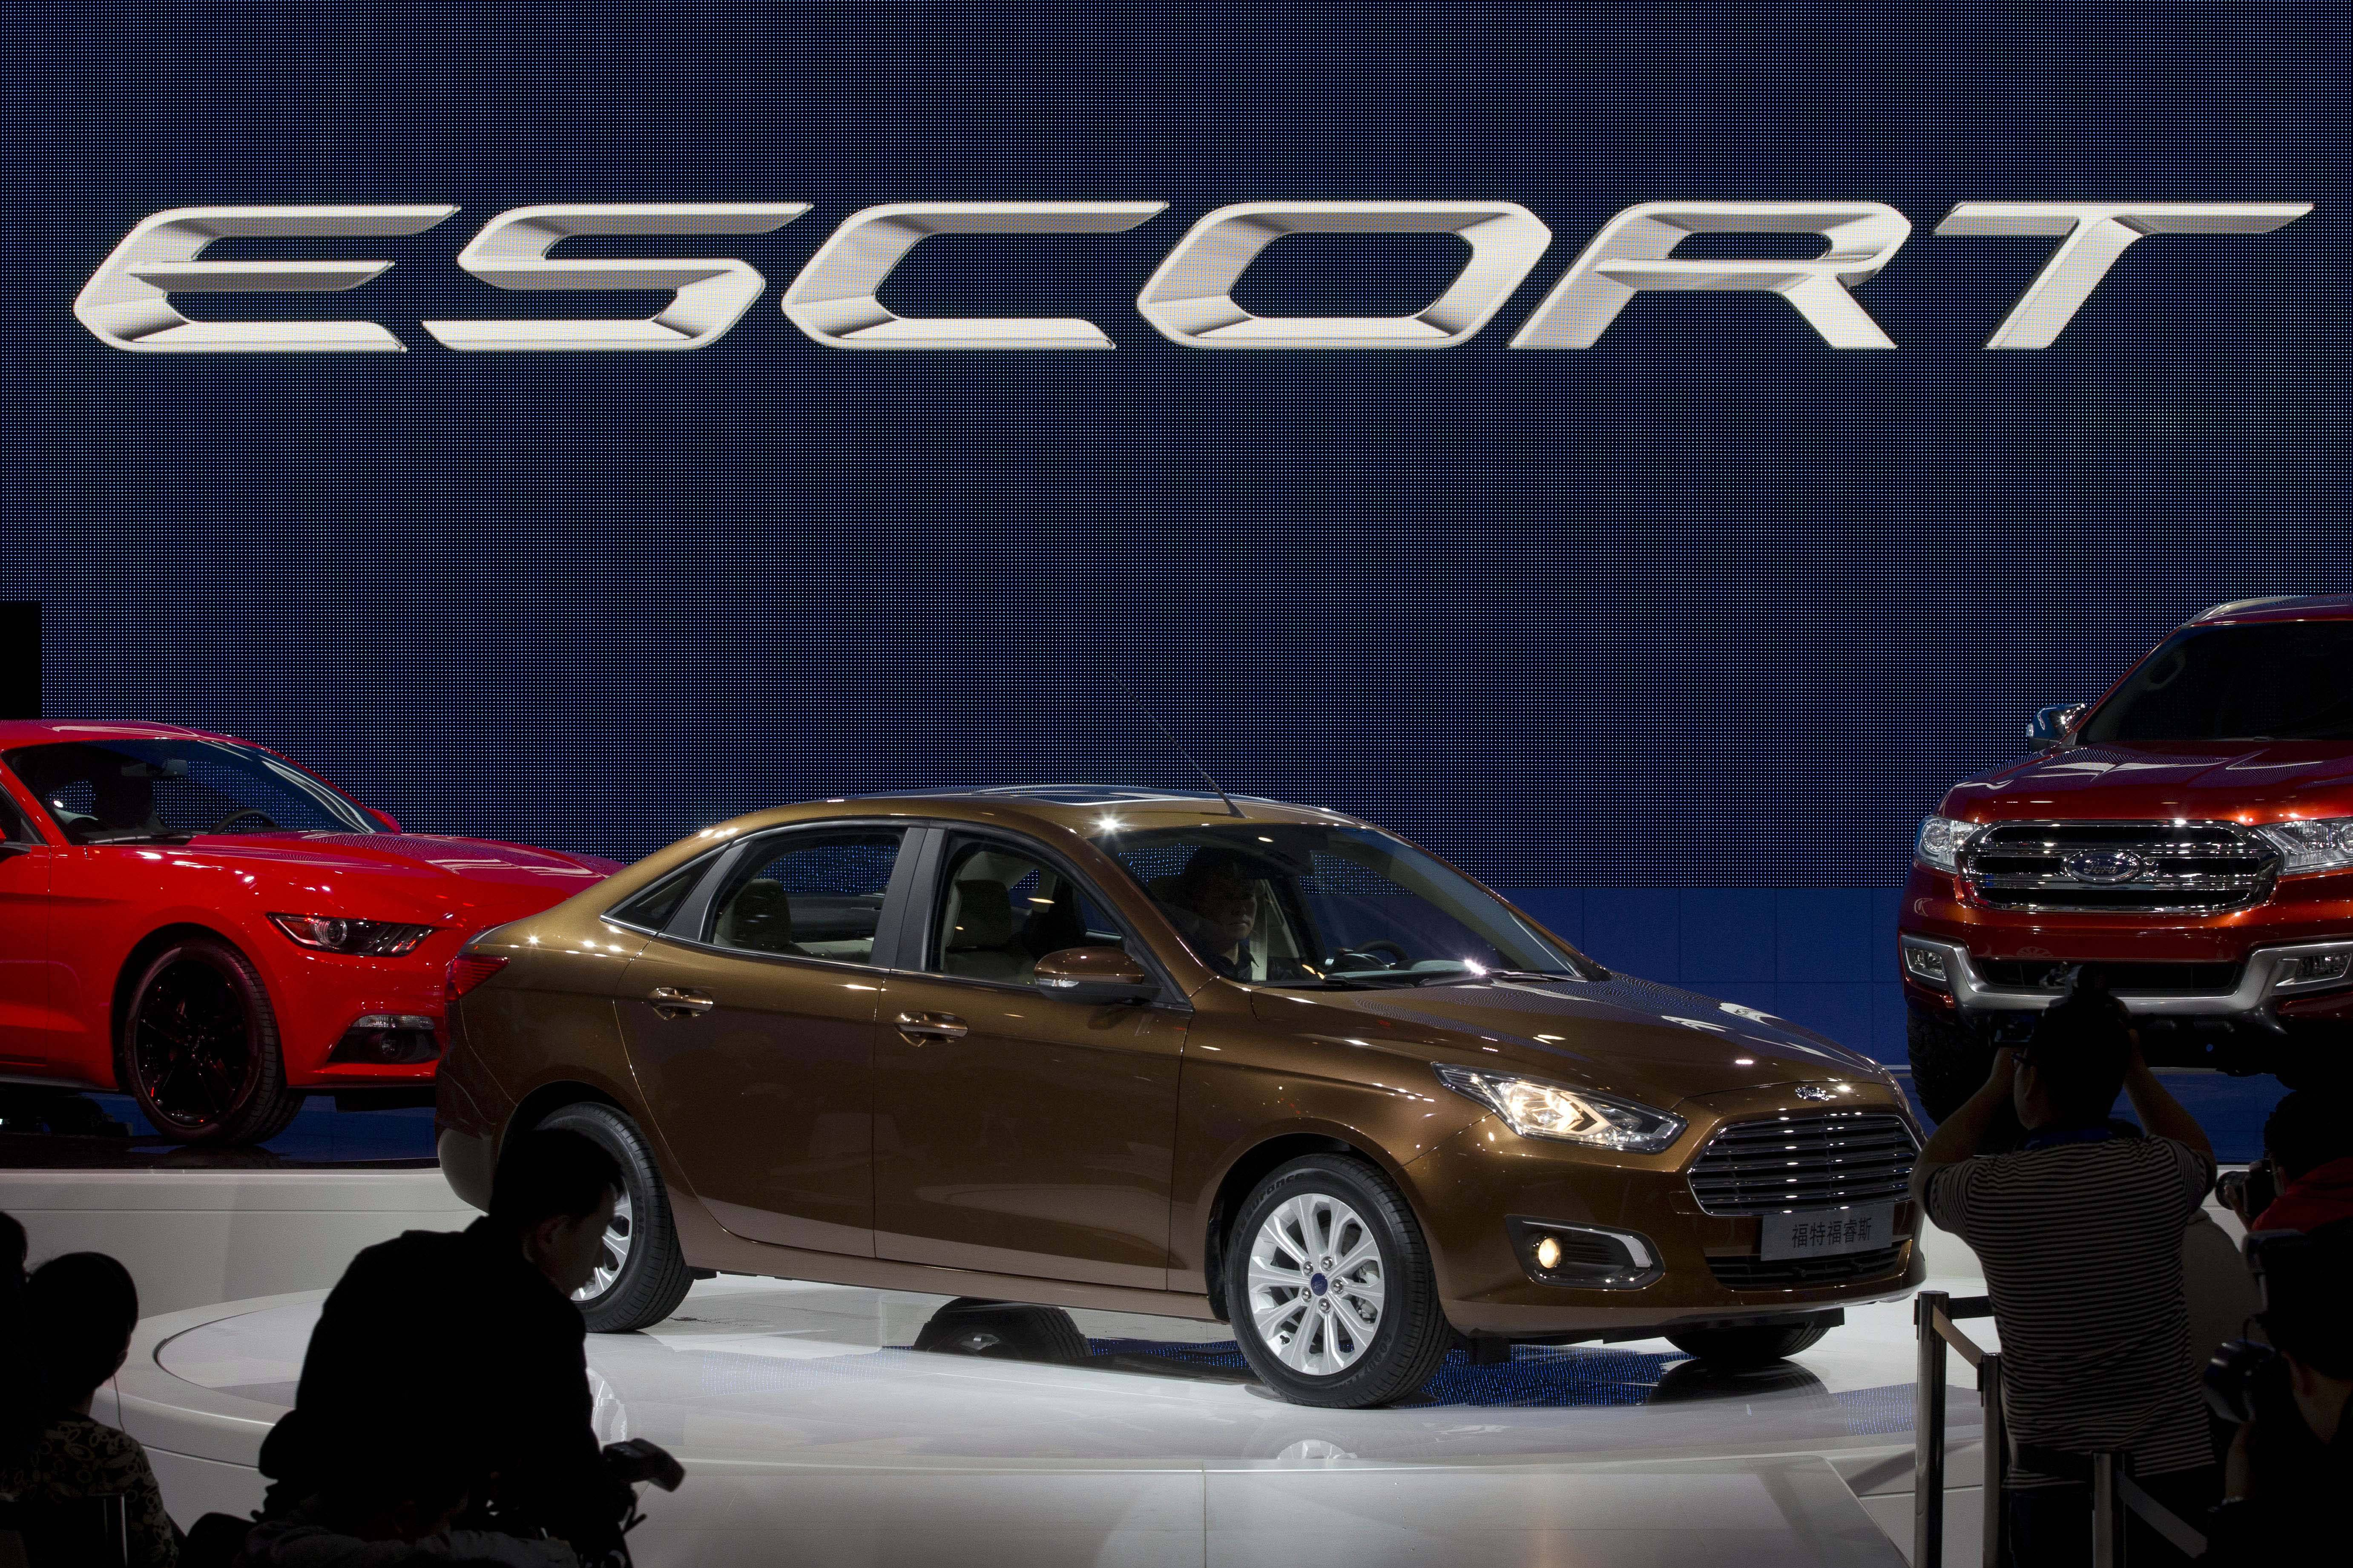 The Ford Escort sedan is unveiled during press day at the China Auto show in Beijing, China, Sunday. Ford unveiled the new Escort sedan designed in China for global sale highlighting the growing influence of Chinese tastes on the industry.